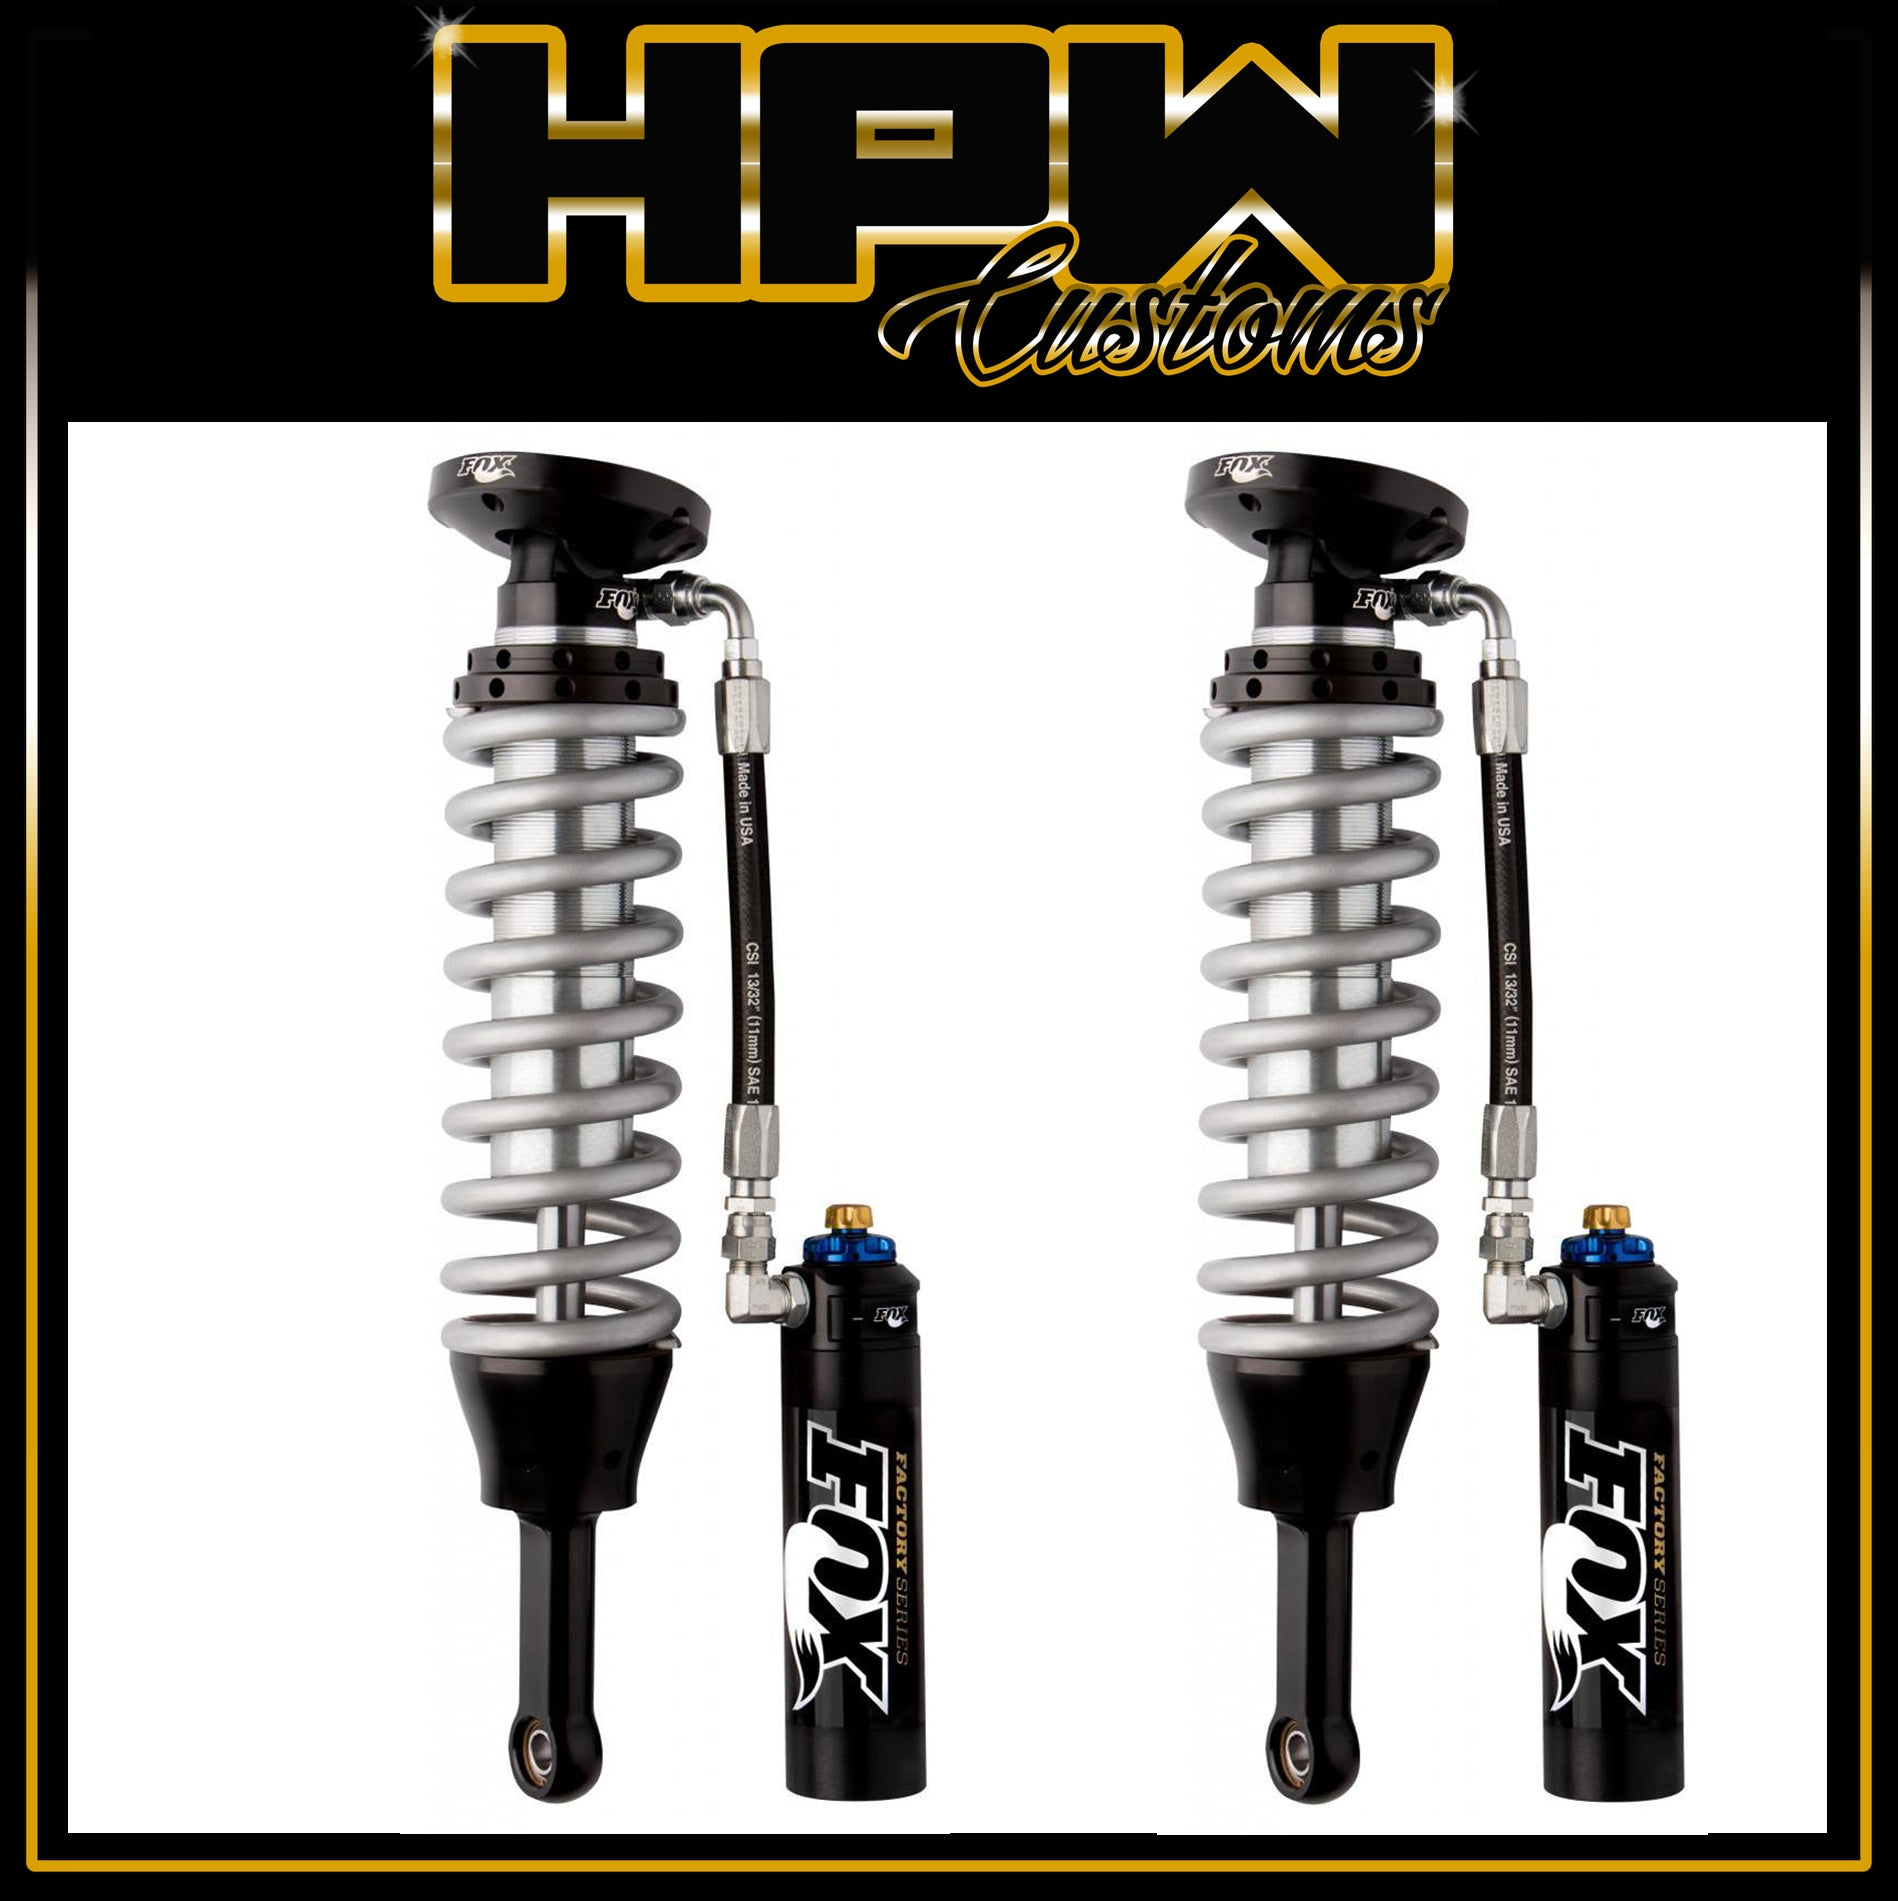 "4"" Lift FOX RACING 2.5 Race SERIES Coilover Reservoir with DSC Adjuster Kits for RAM 1500 LARAMIE & EXPRESS"